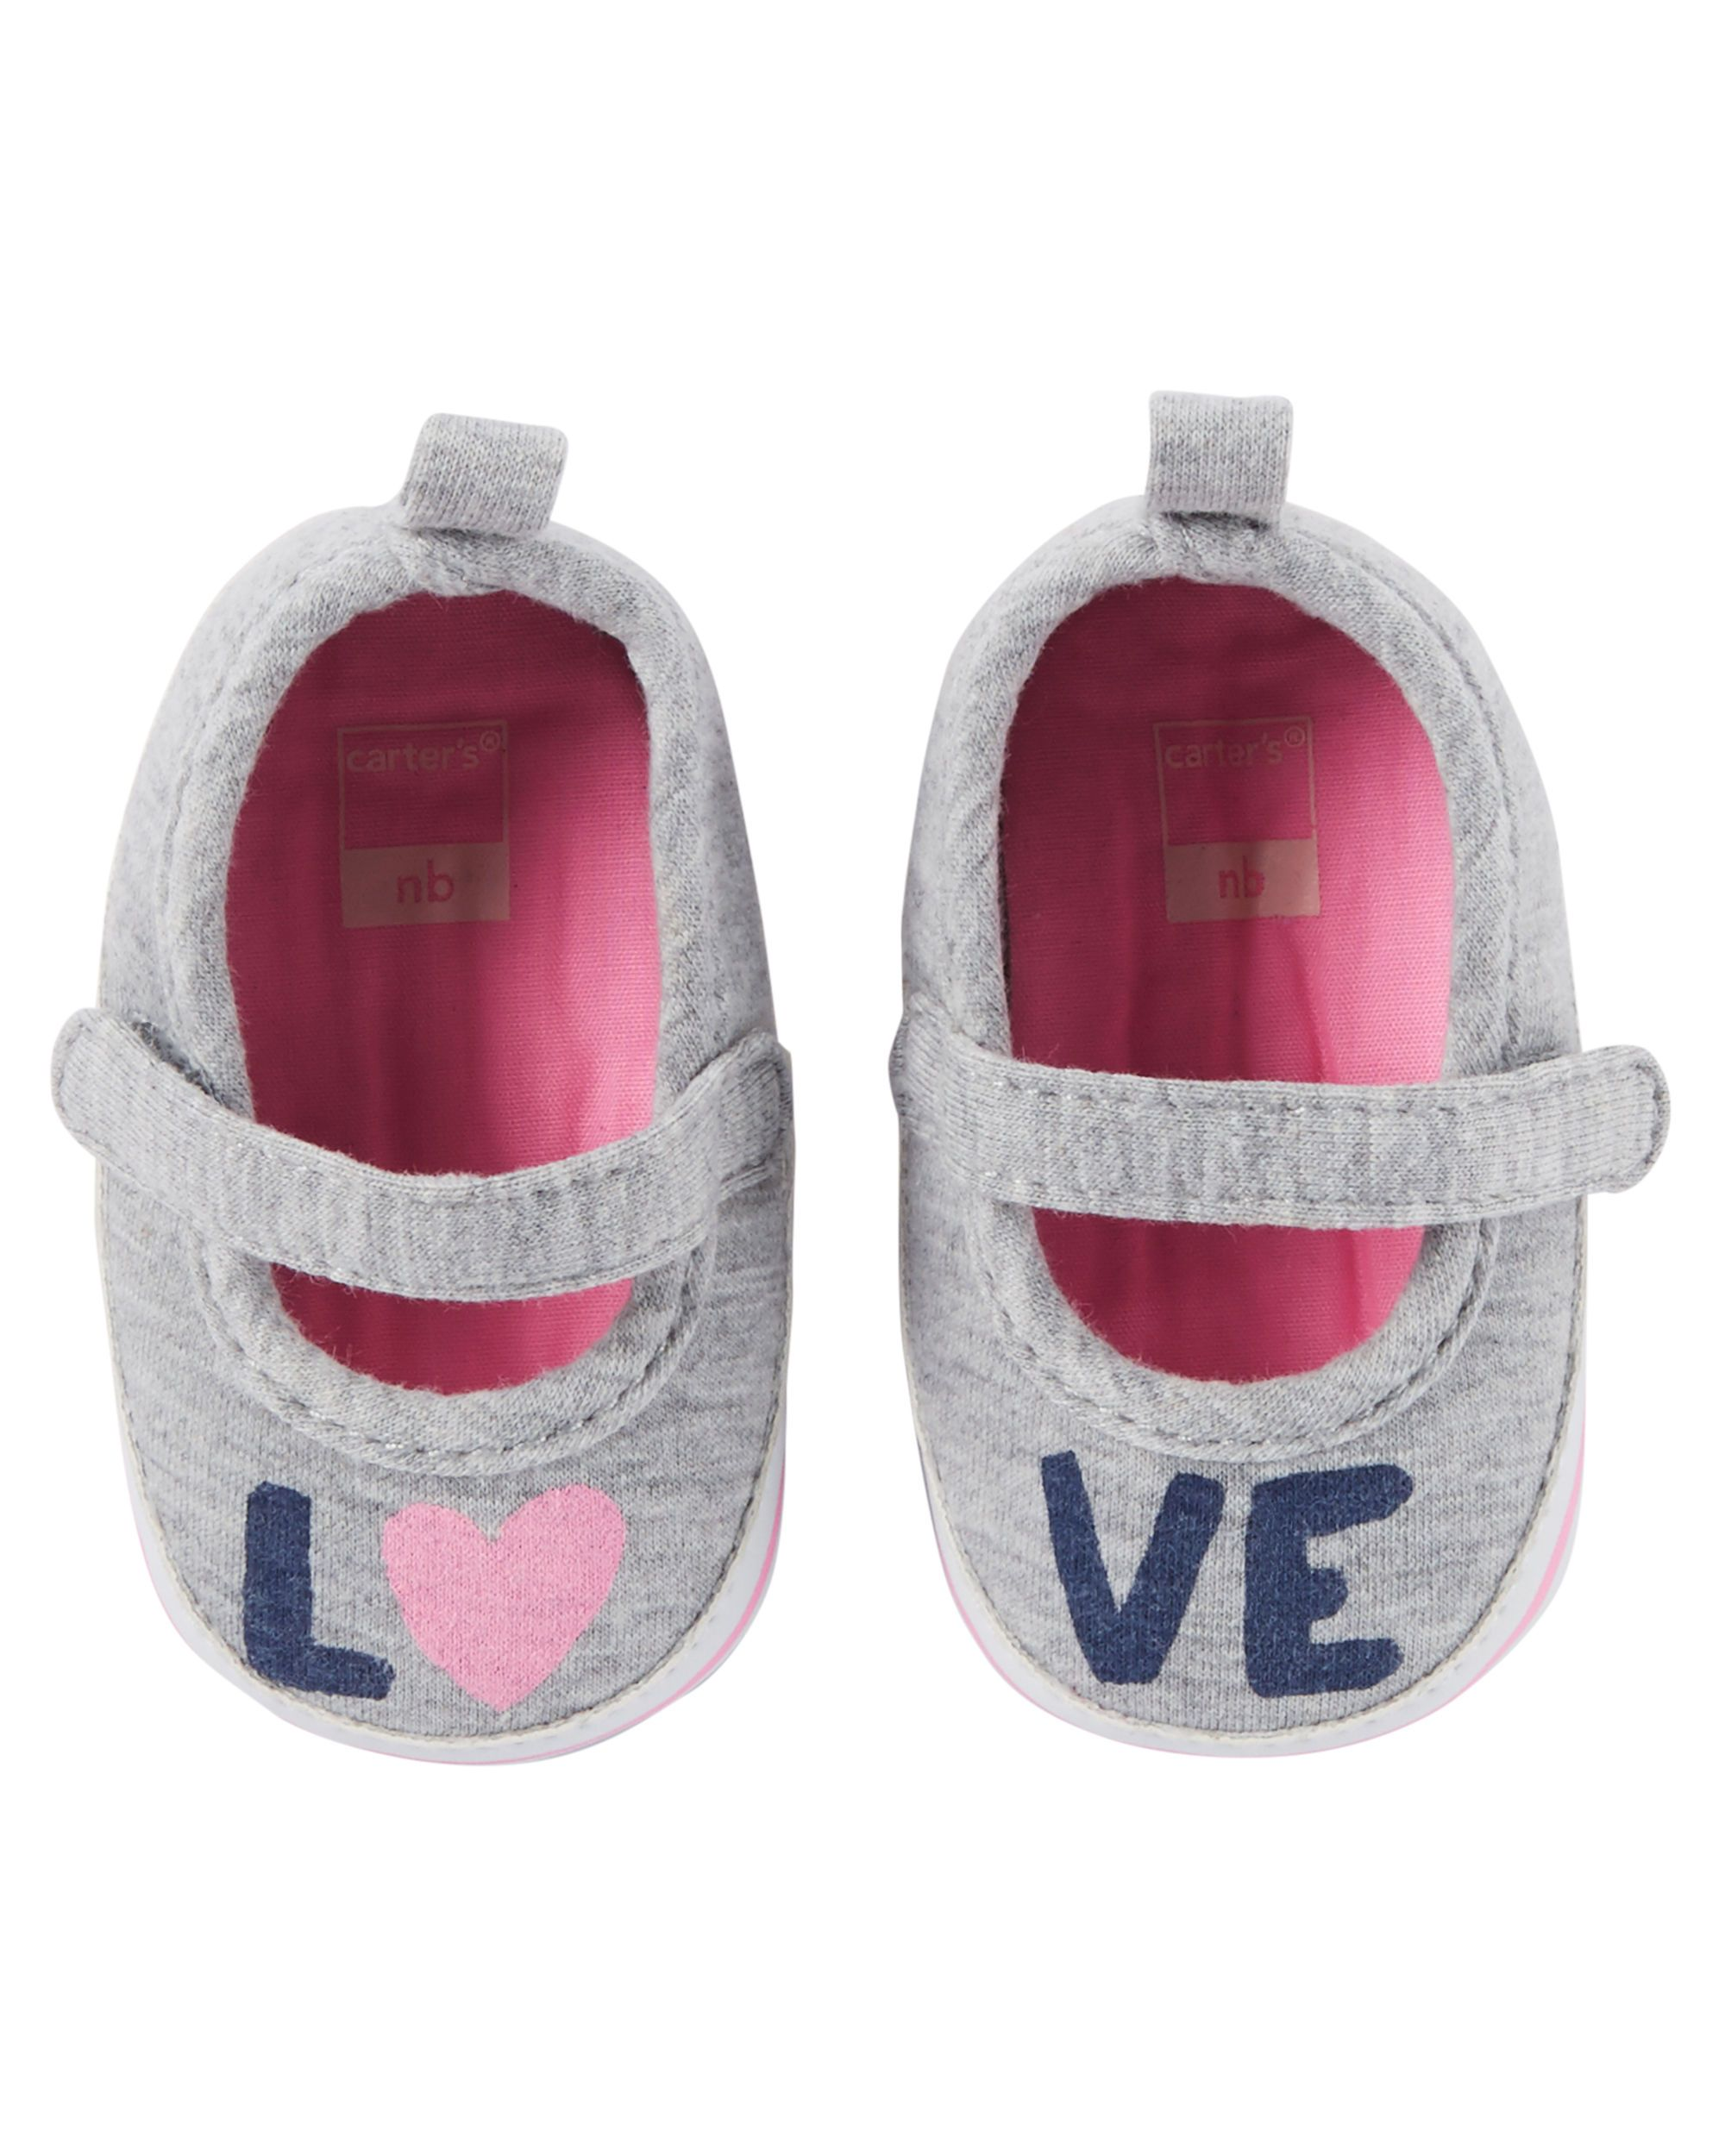 Mary Jane Sneaker Crib Shoes